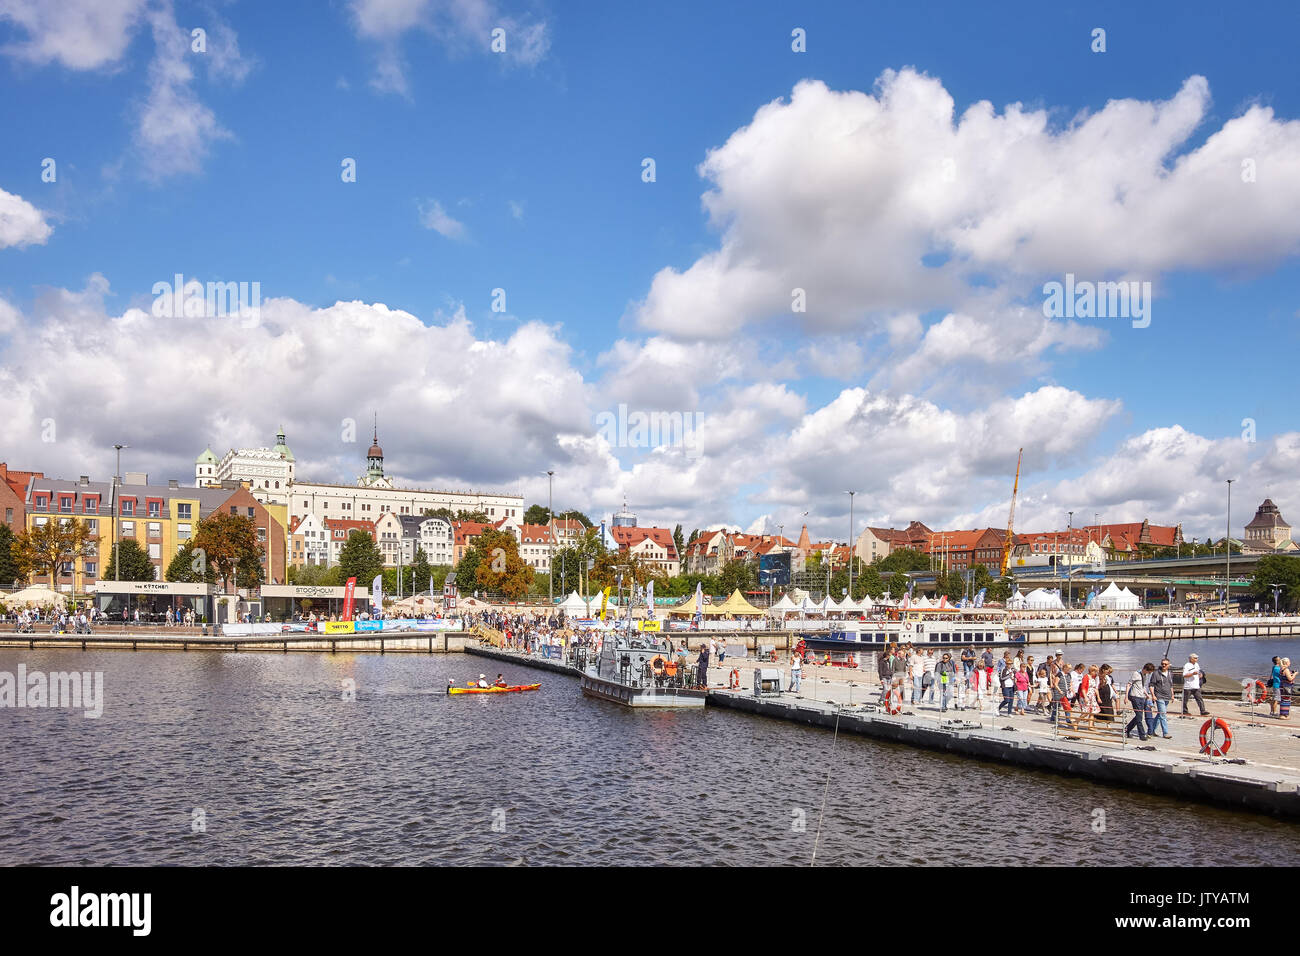 Szczecin, Poland – August 06, 2017: Visitors cross Oder river with military floating bridge during final of The Tall Ships Races 2017. - Stock Image